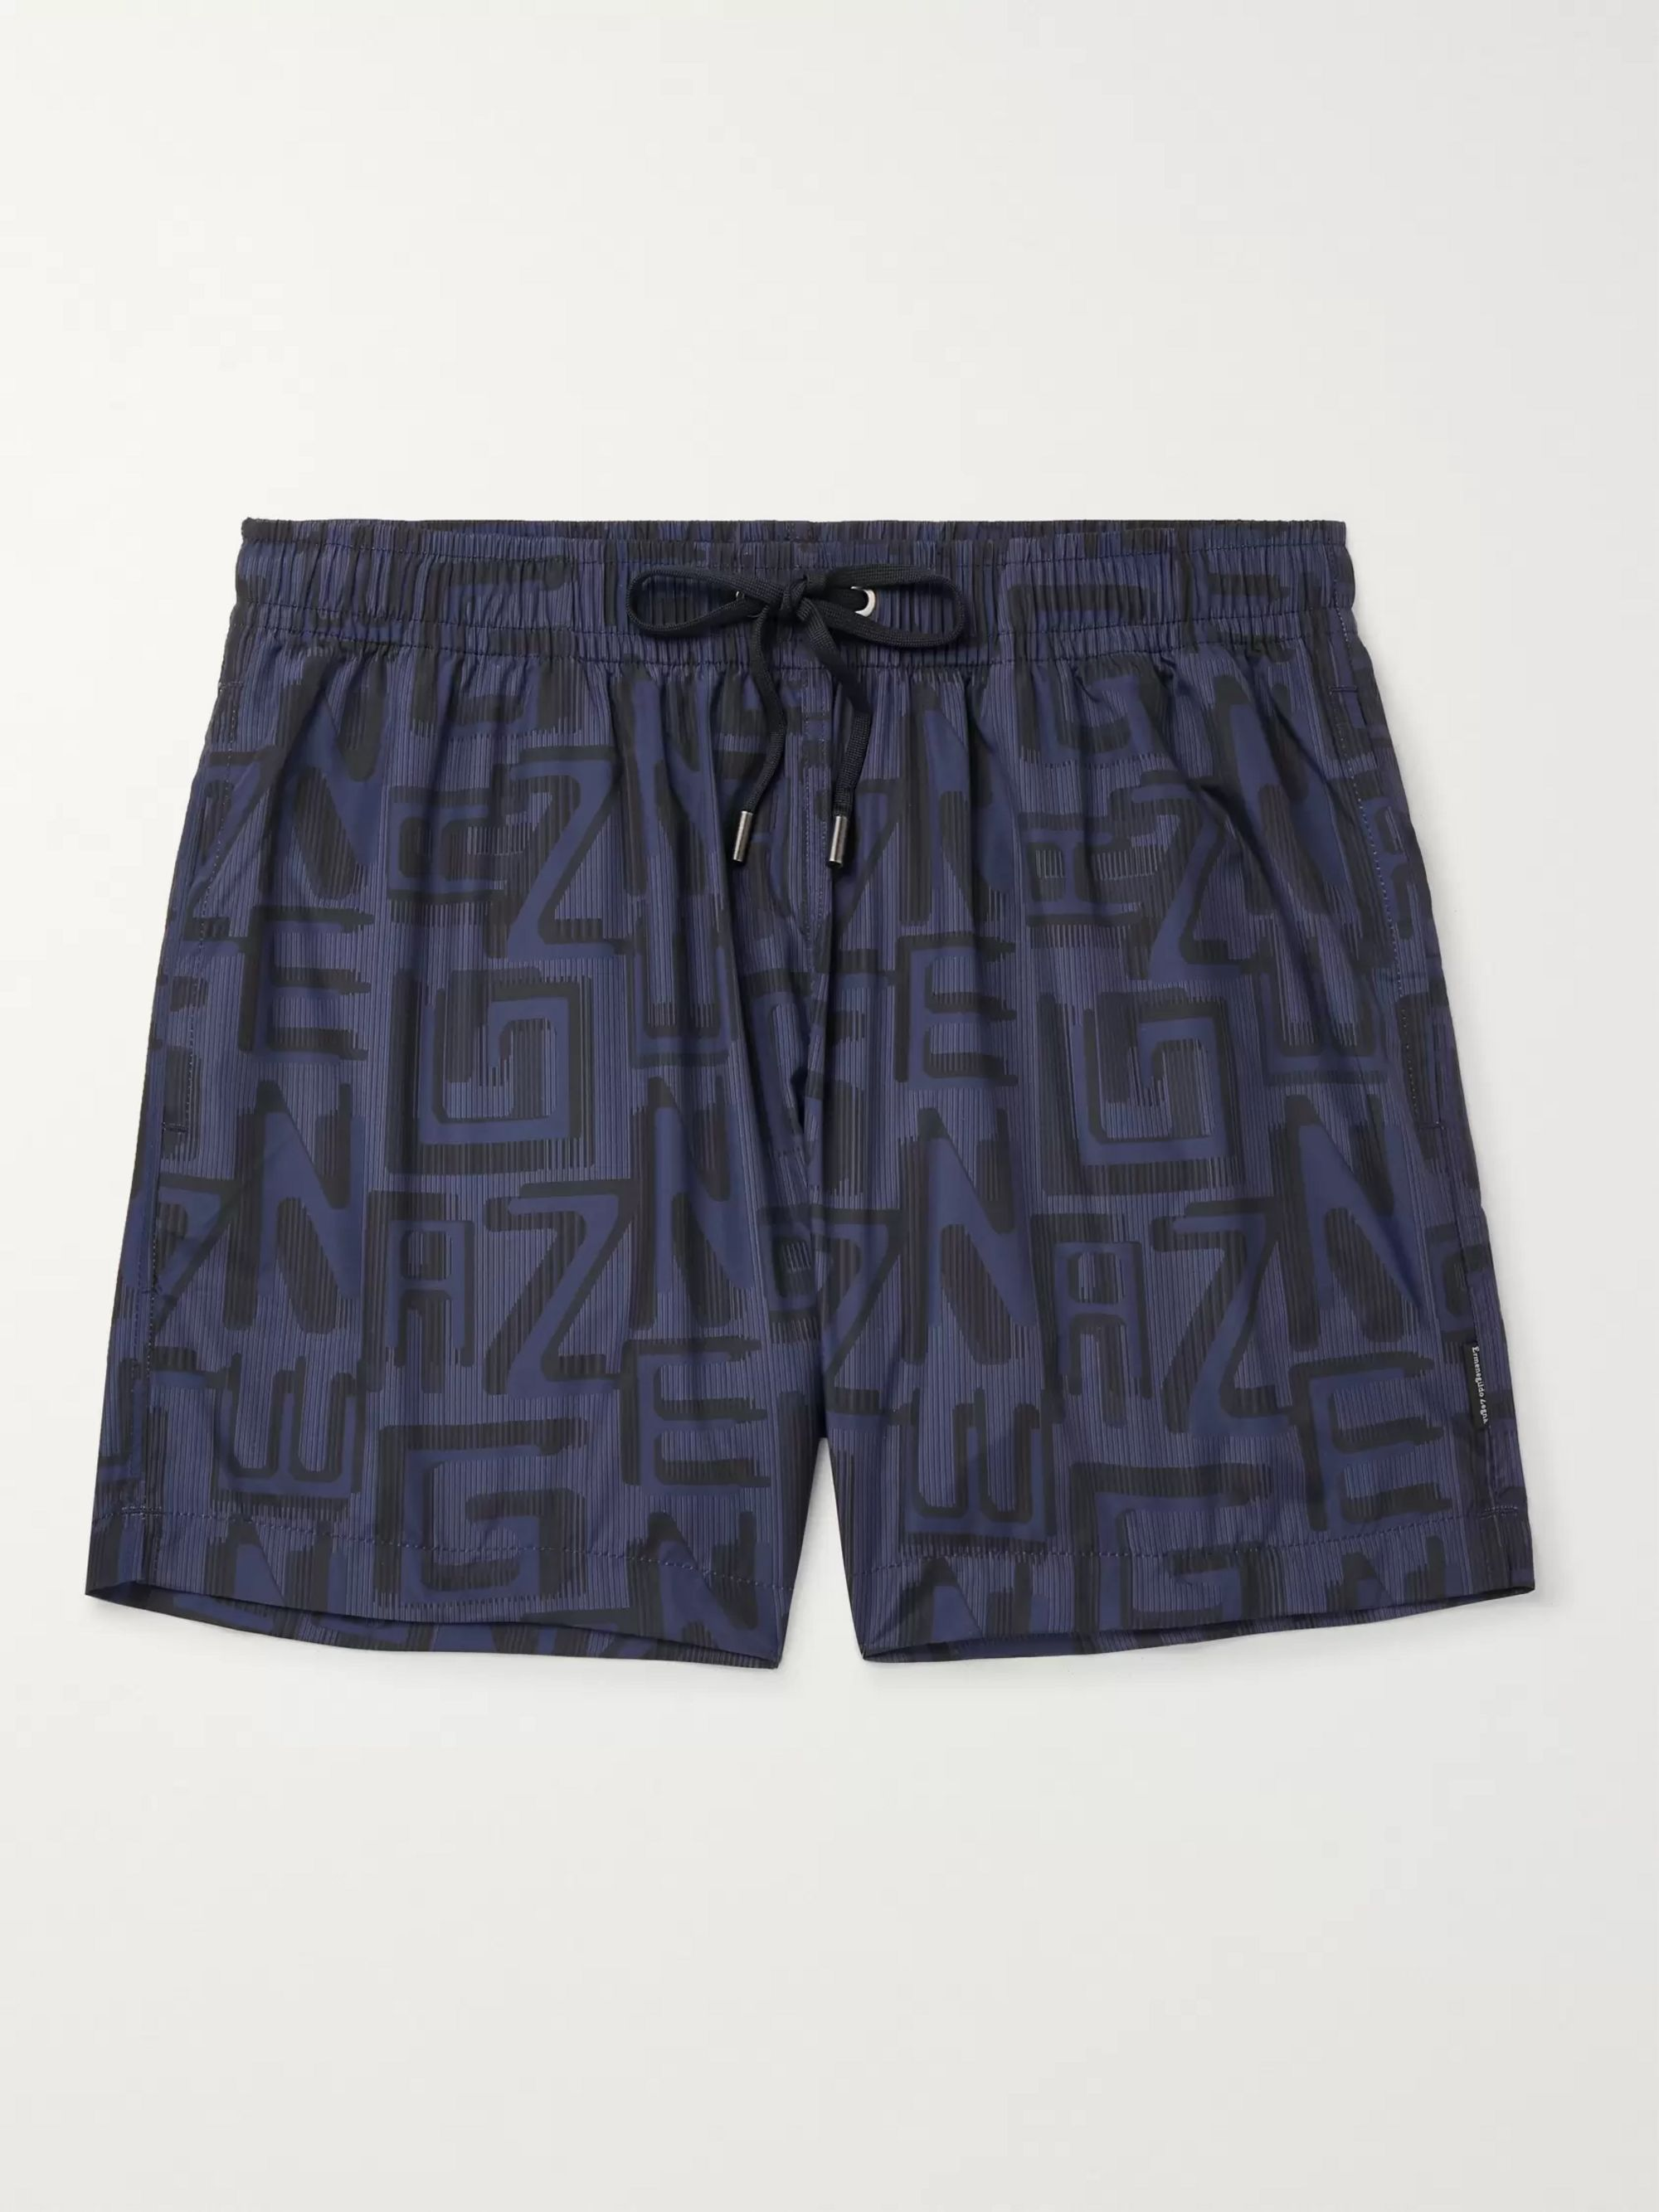 Ermenegildo Zegna Mid-Length Printed Swim Shorts